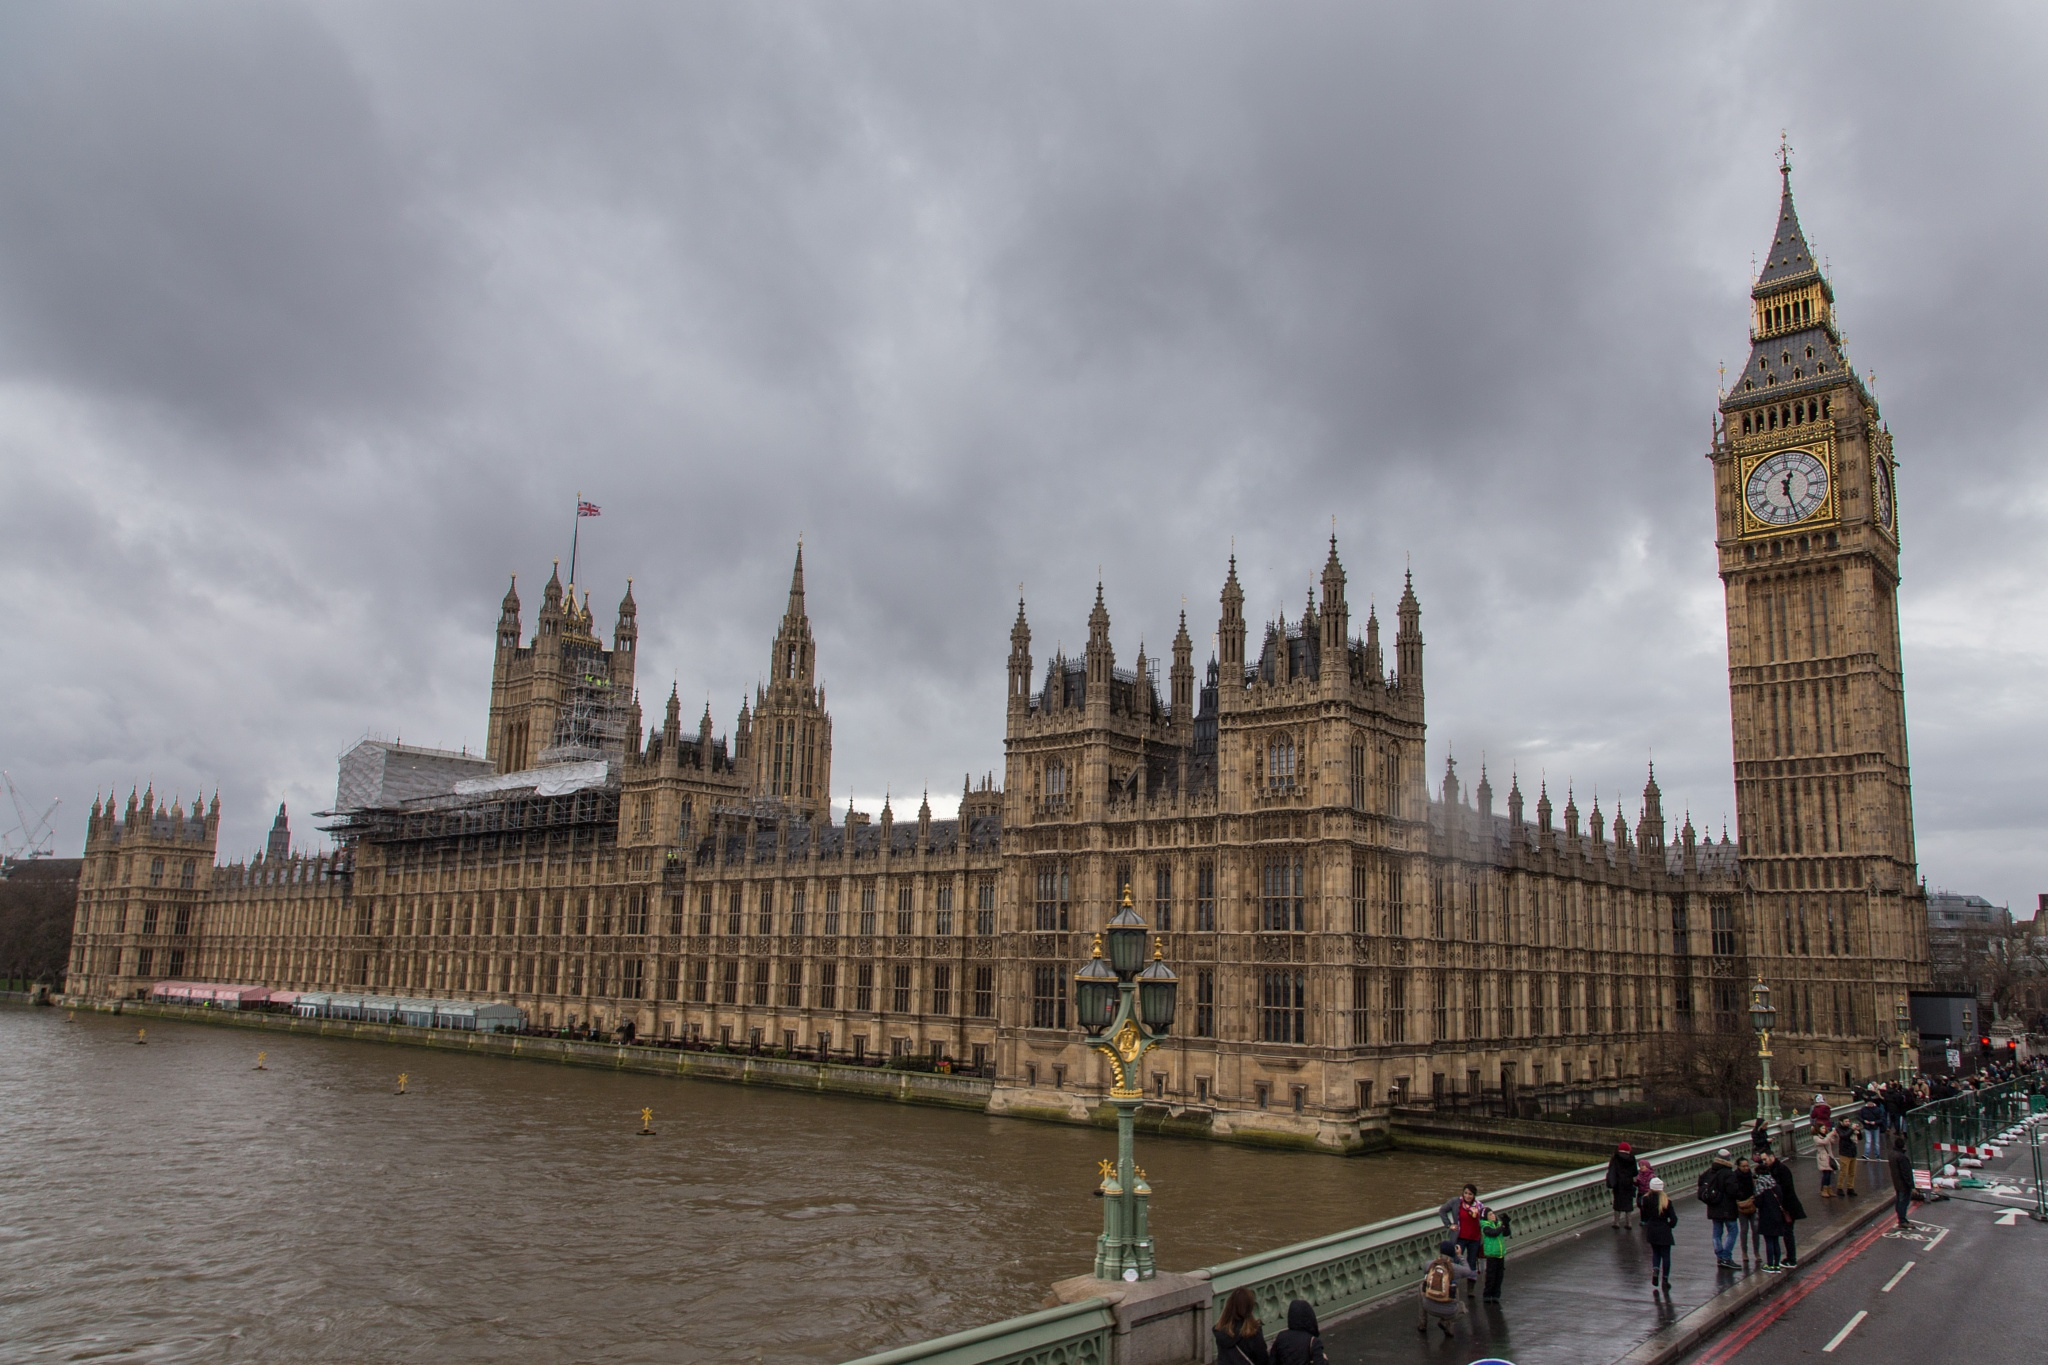 Palace of Westminster and Big Ben, Westminster, London, United Kingdom by Andrei Snitko